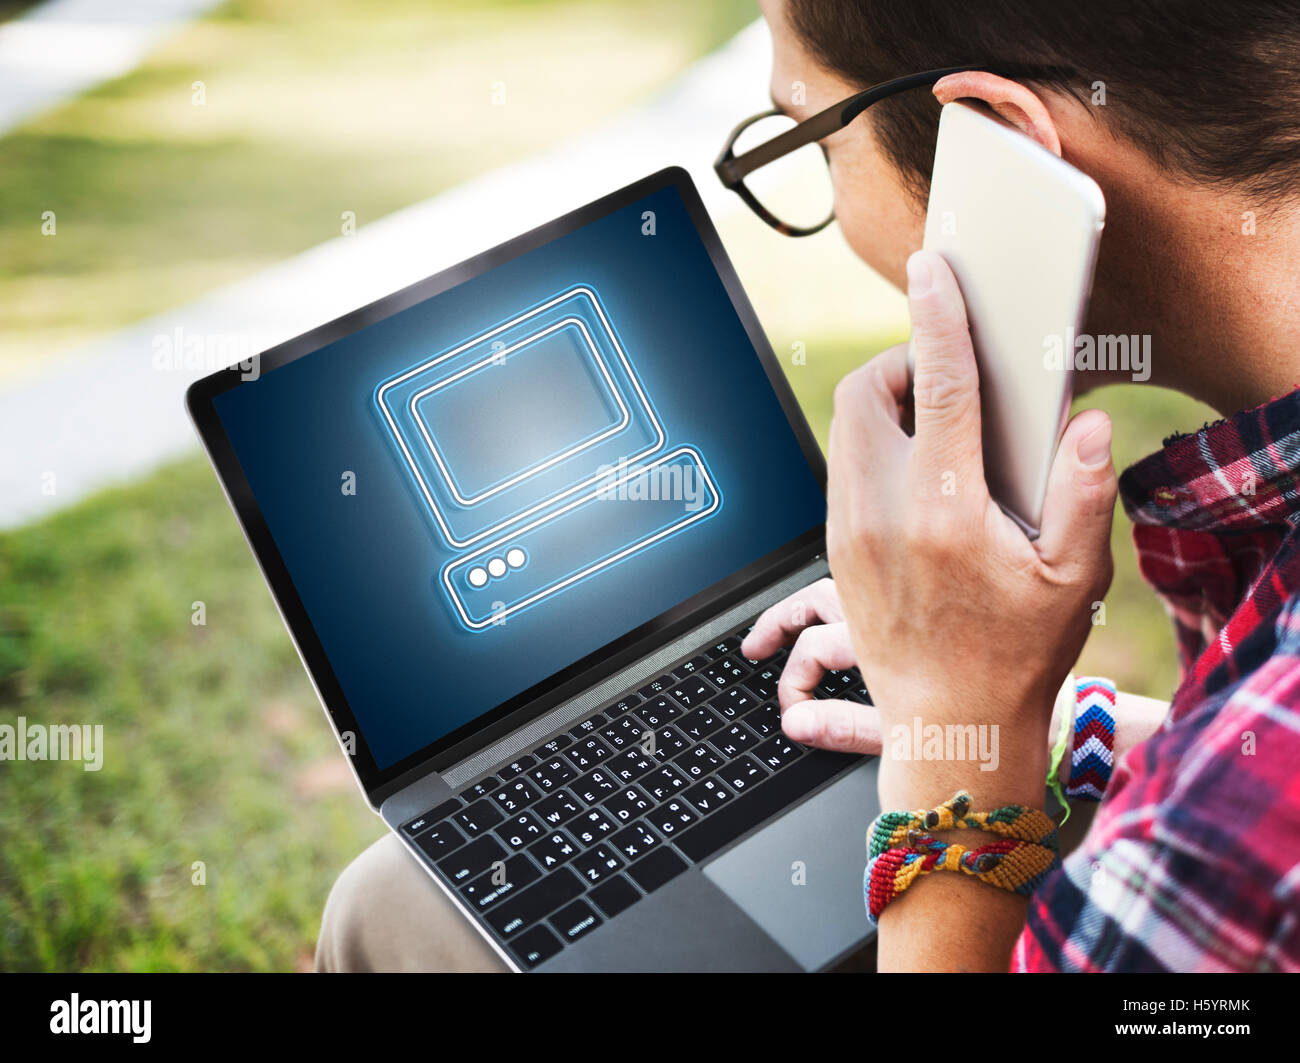 Computer Graphic Connection Digital Technology Concept - Stock Image